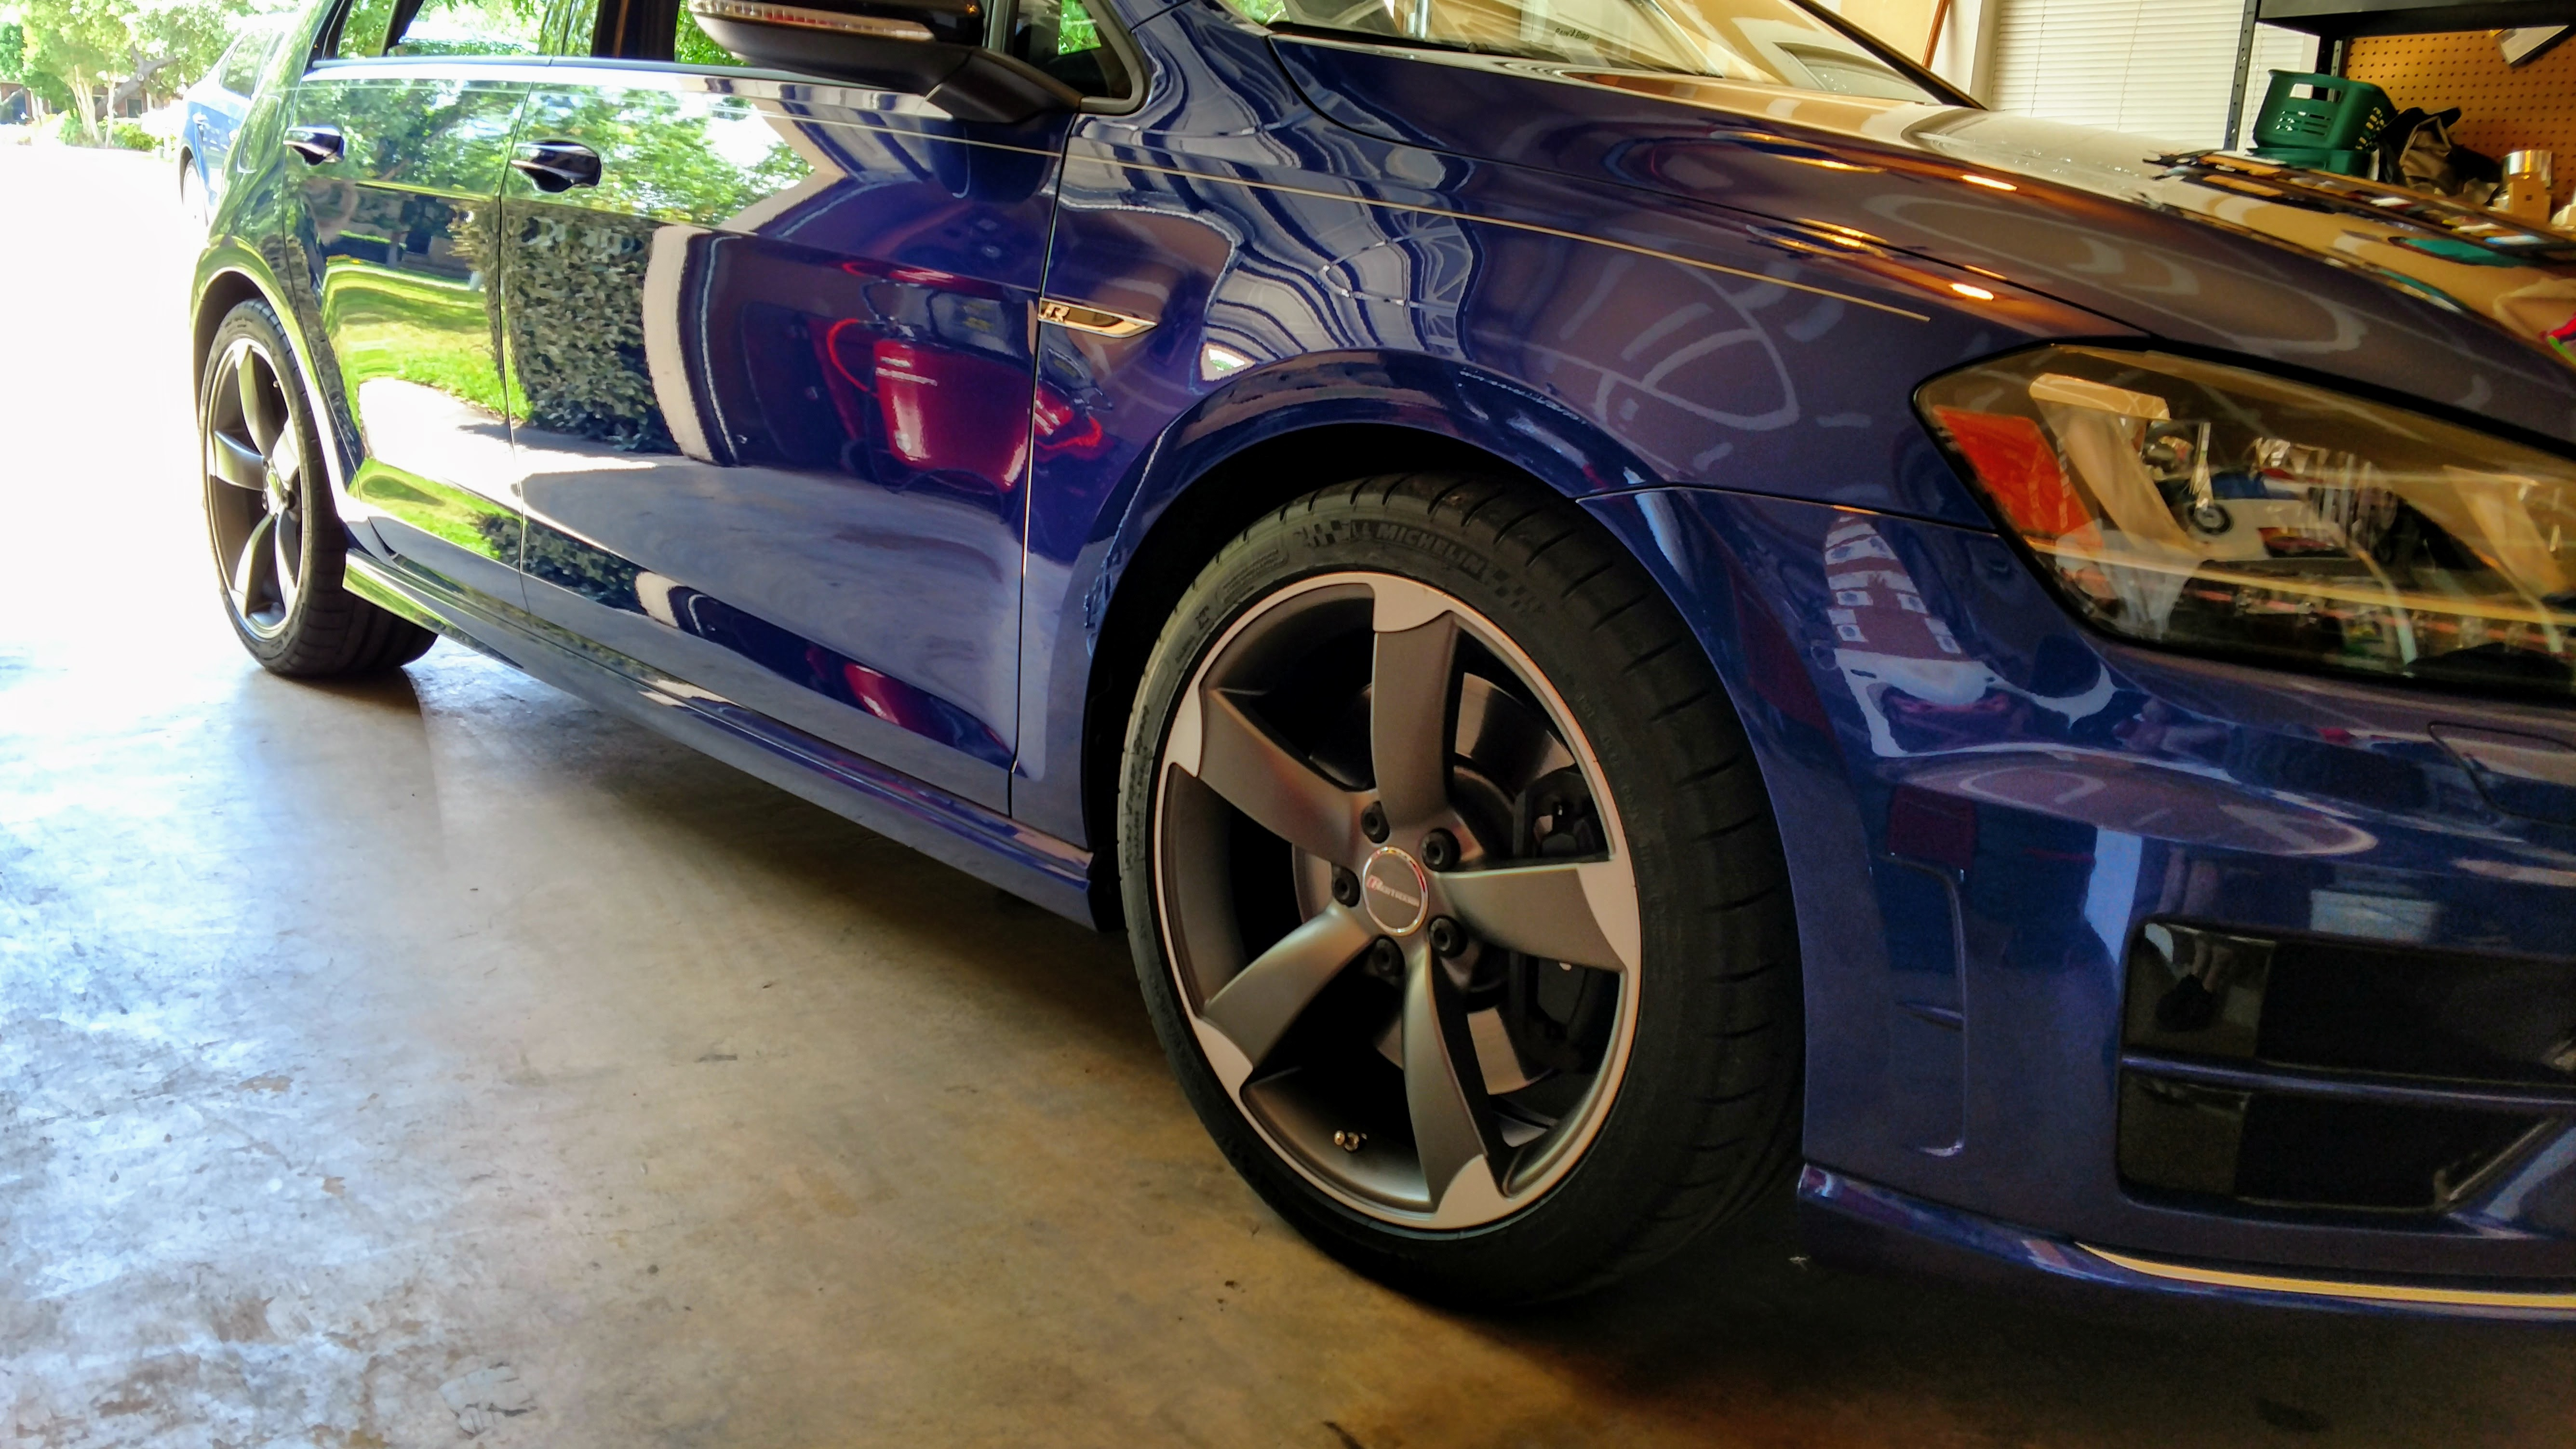 kia wheels sale audi a of fl wheel garden winter and refinishing for service park used image related optima meticulous repair since